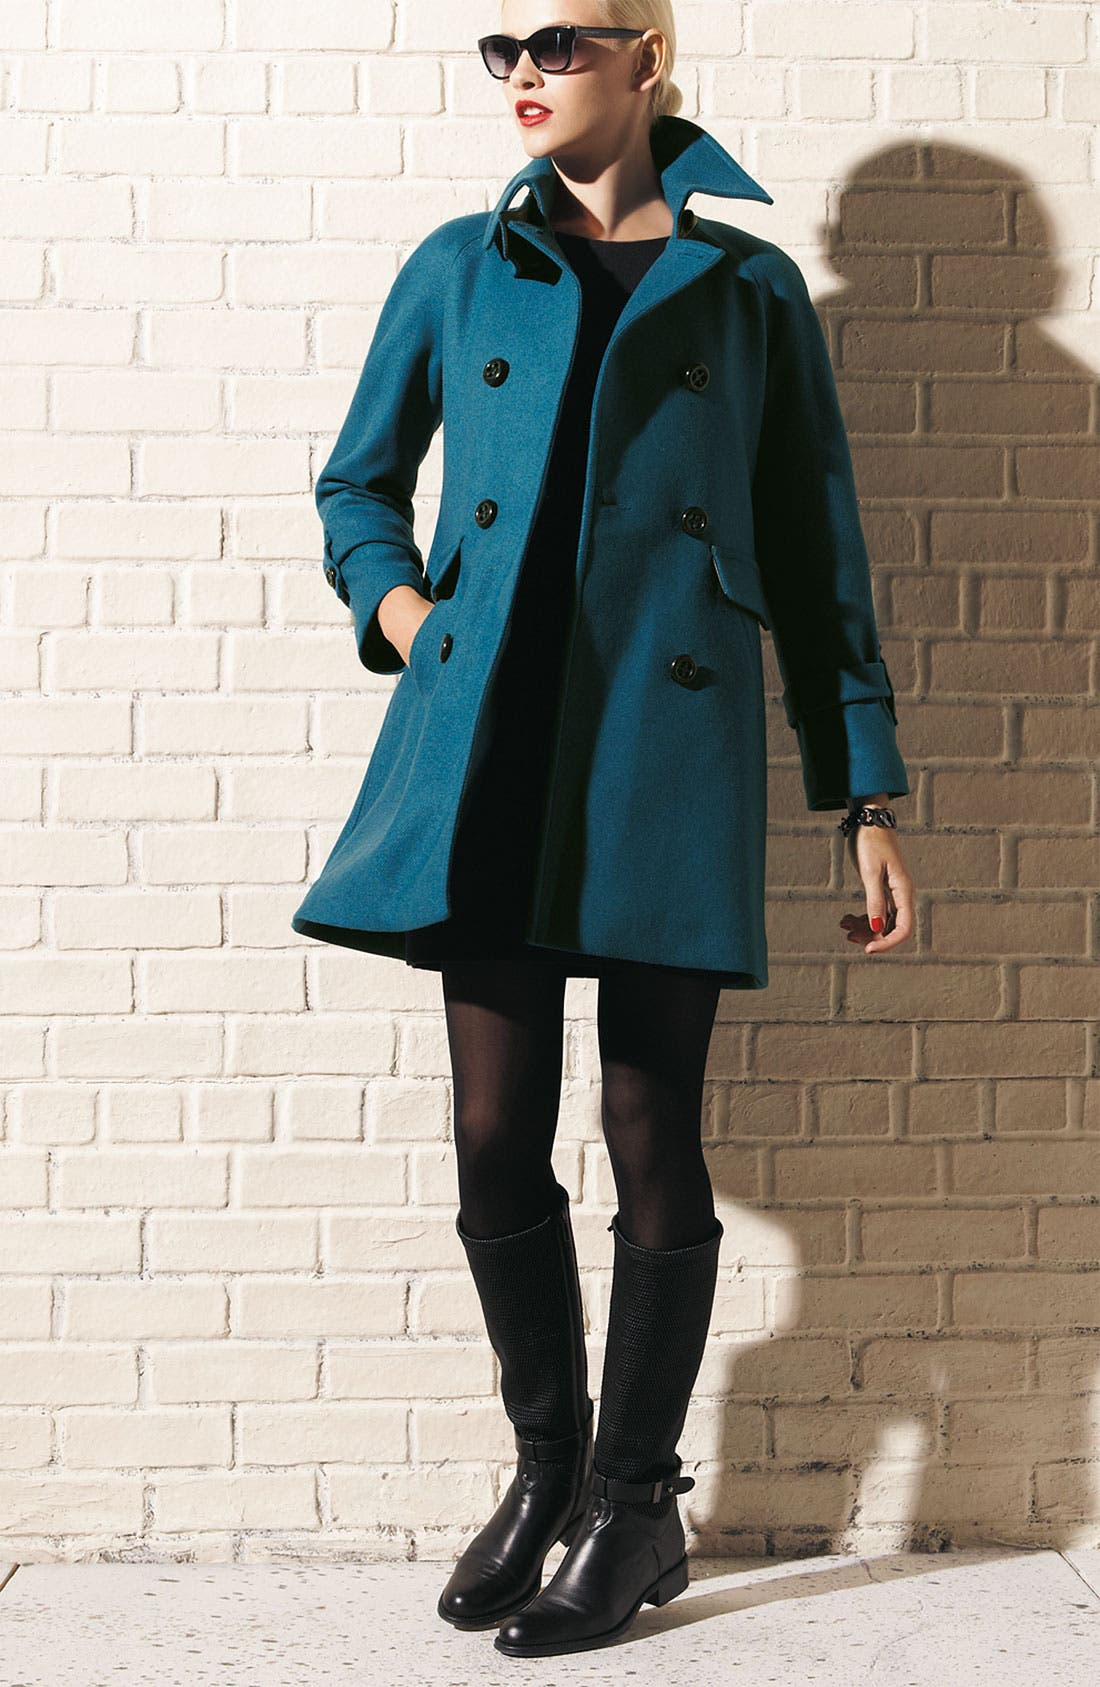 Main Image - Trina Turk Coat & kate spade new york dress